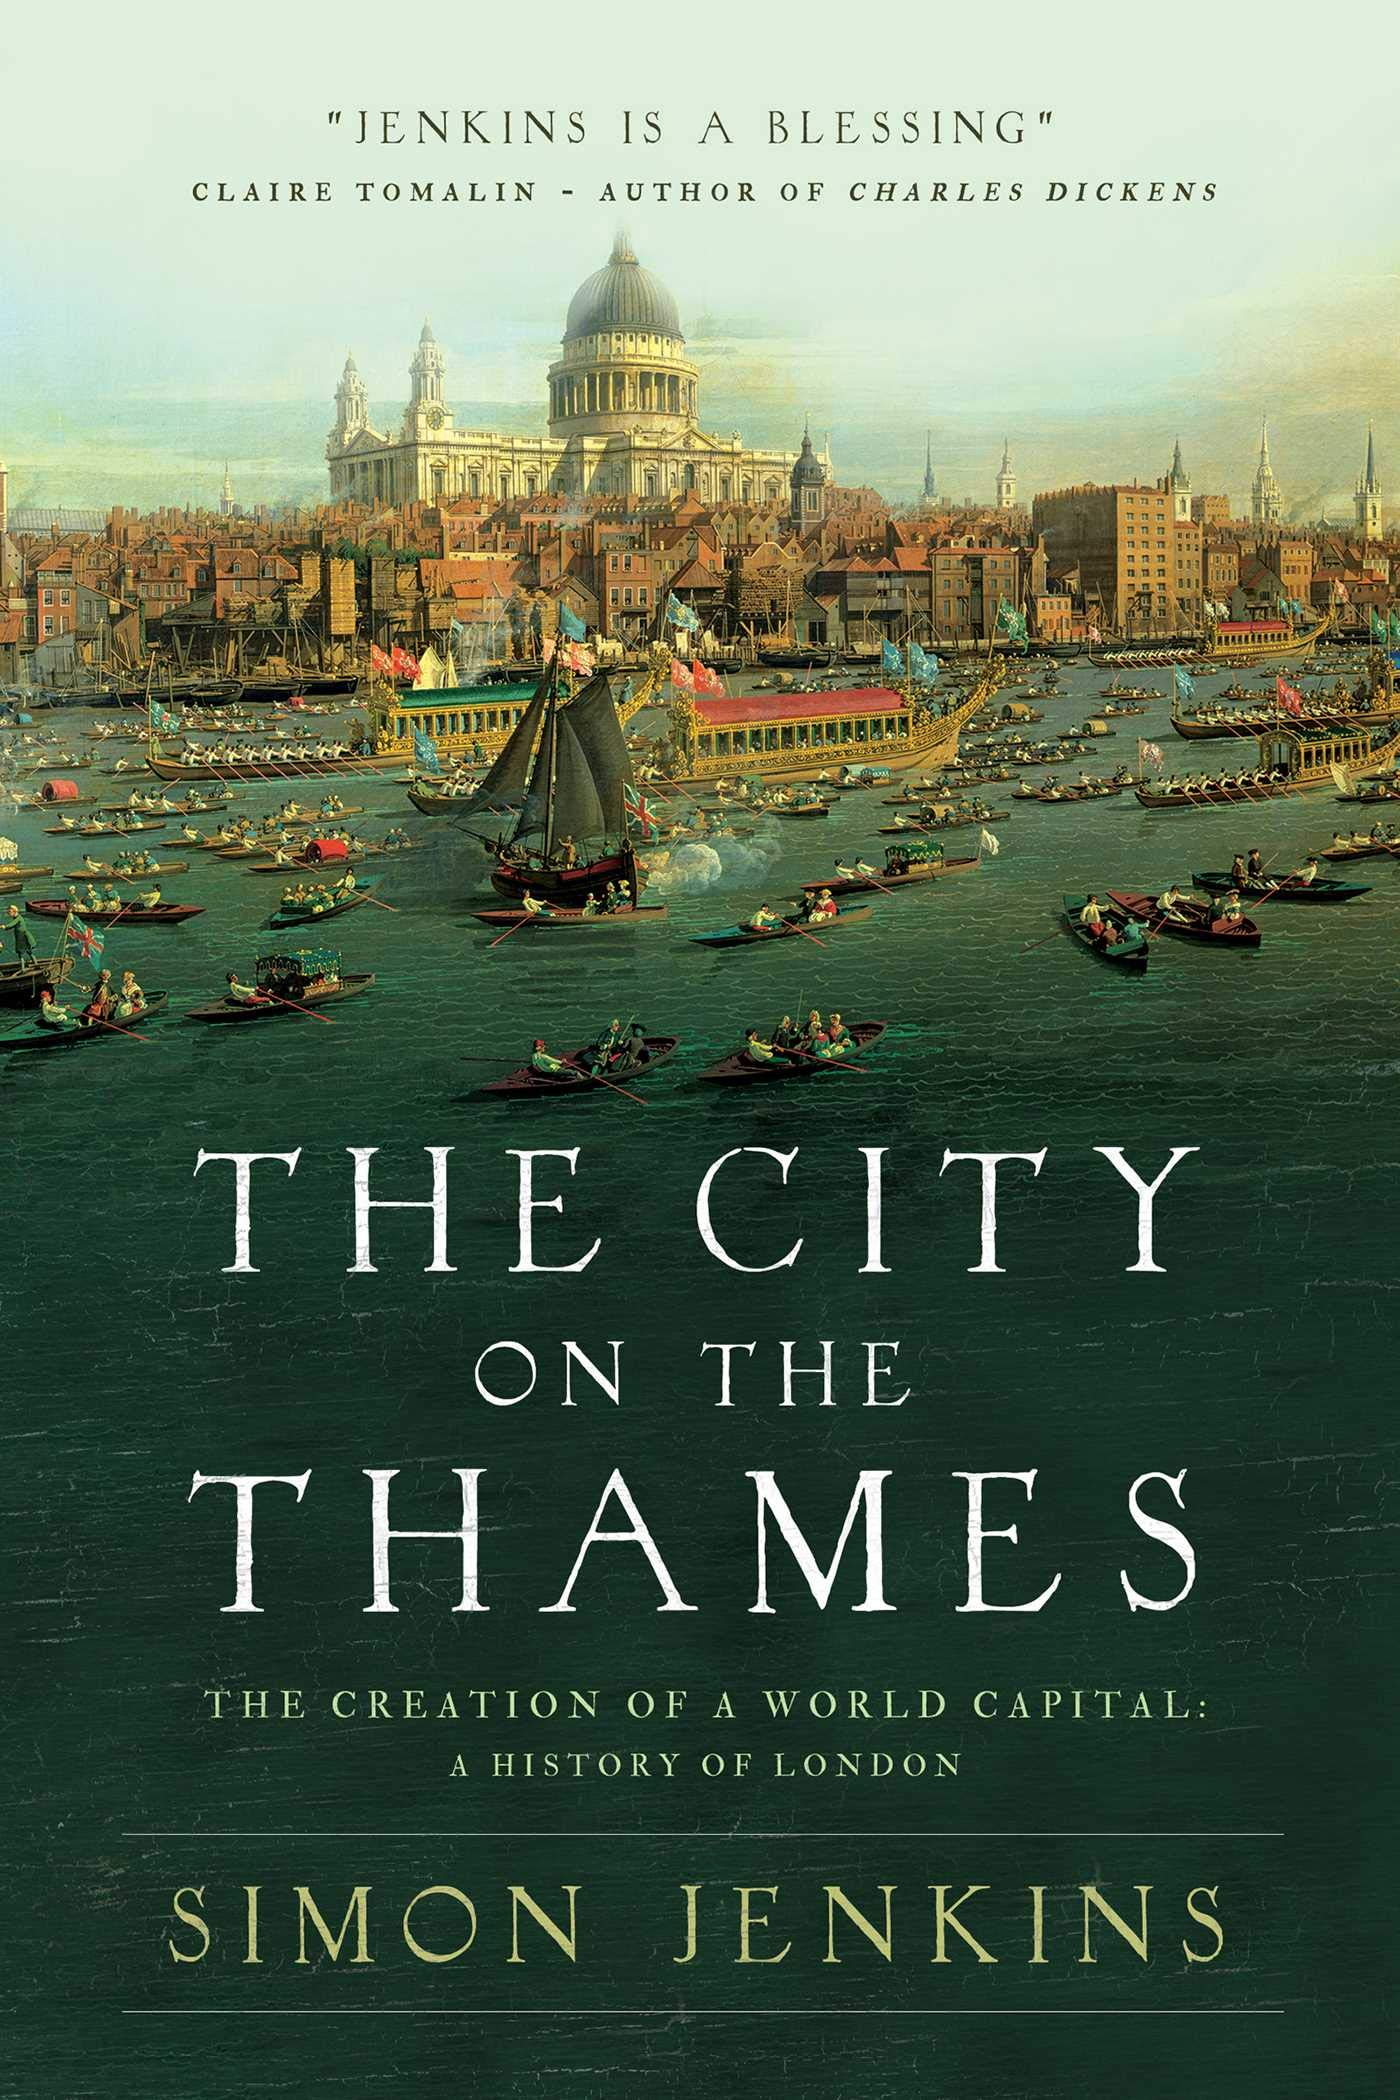 The City on the Thames: The Creation of a World Capital: A History of London